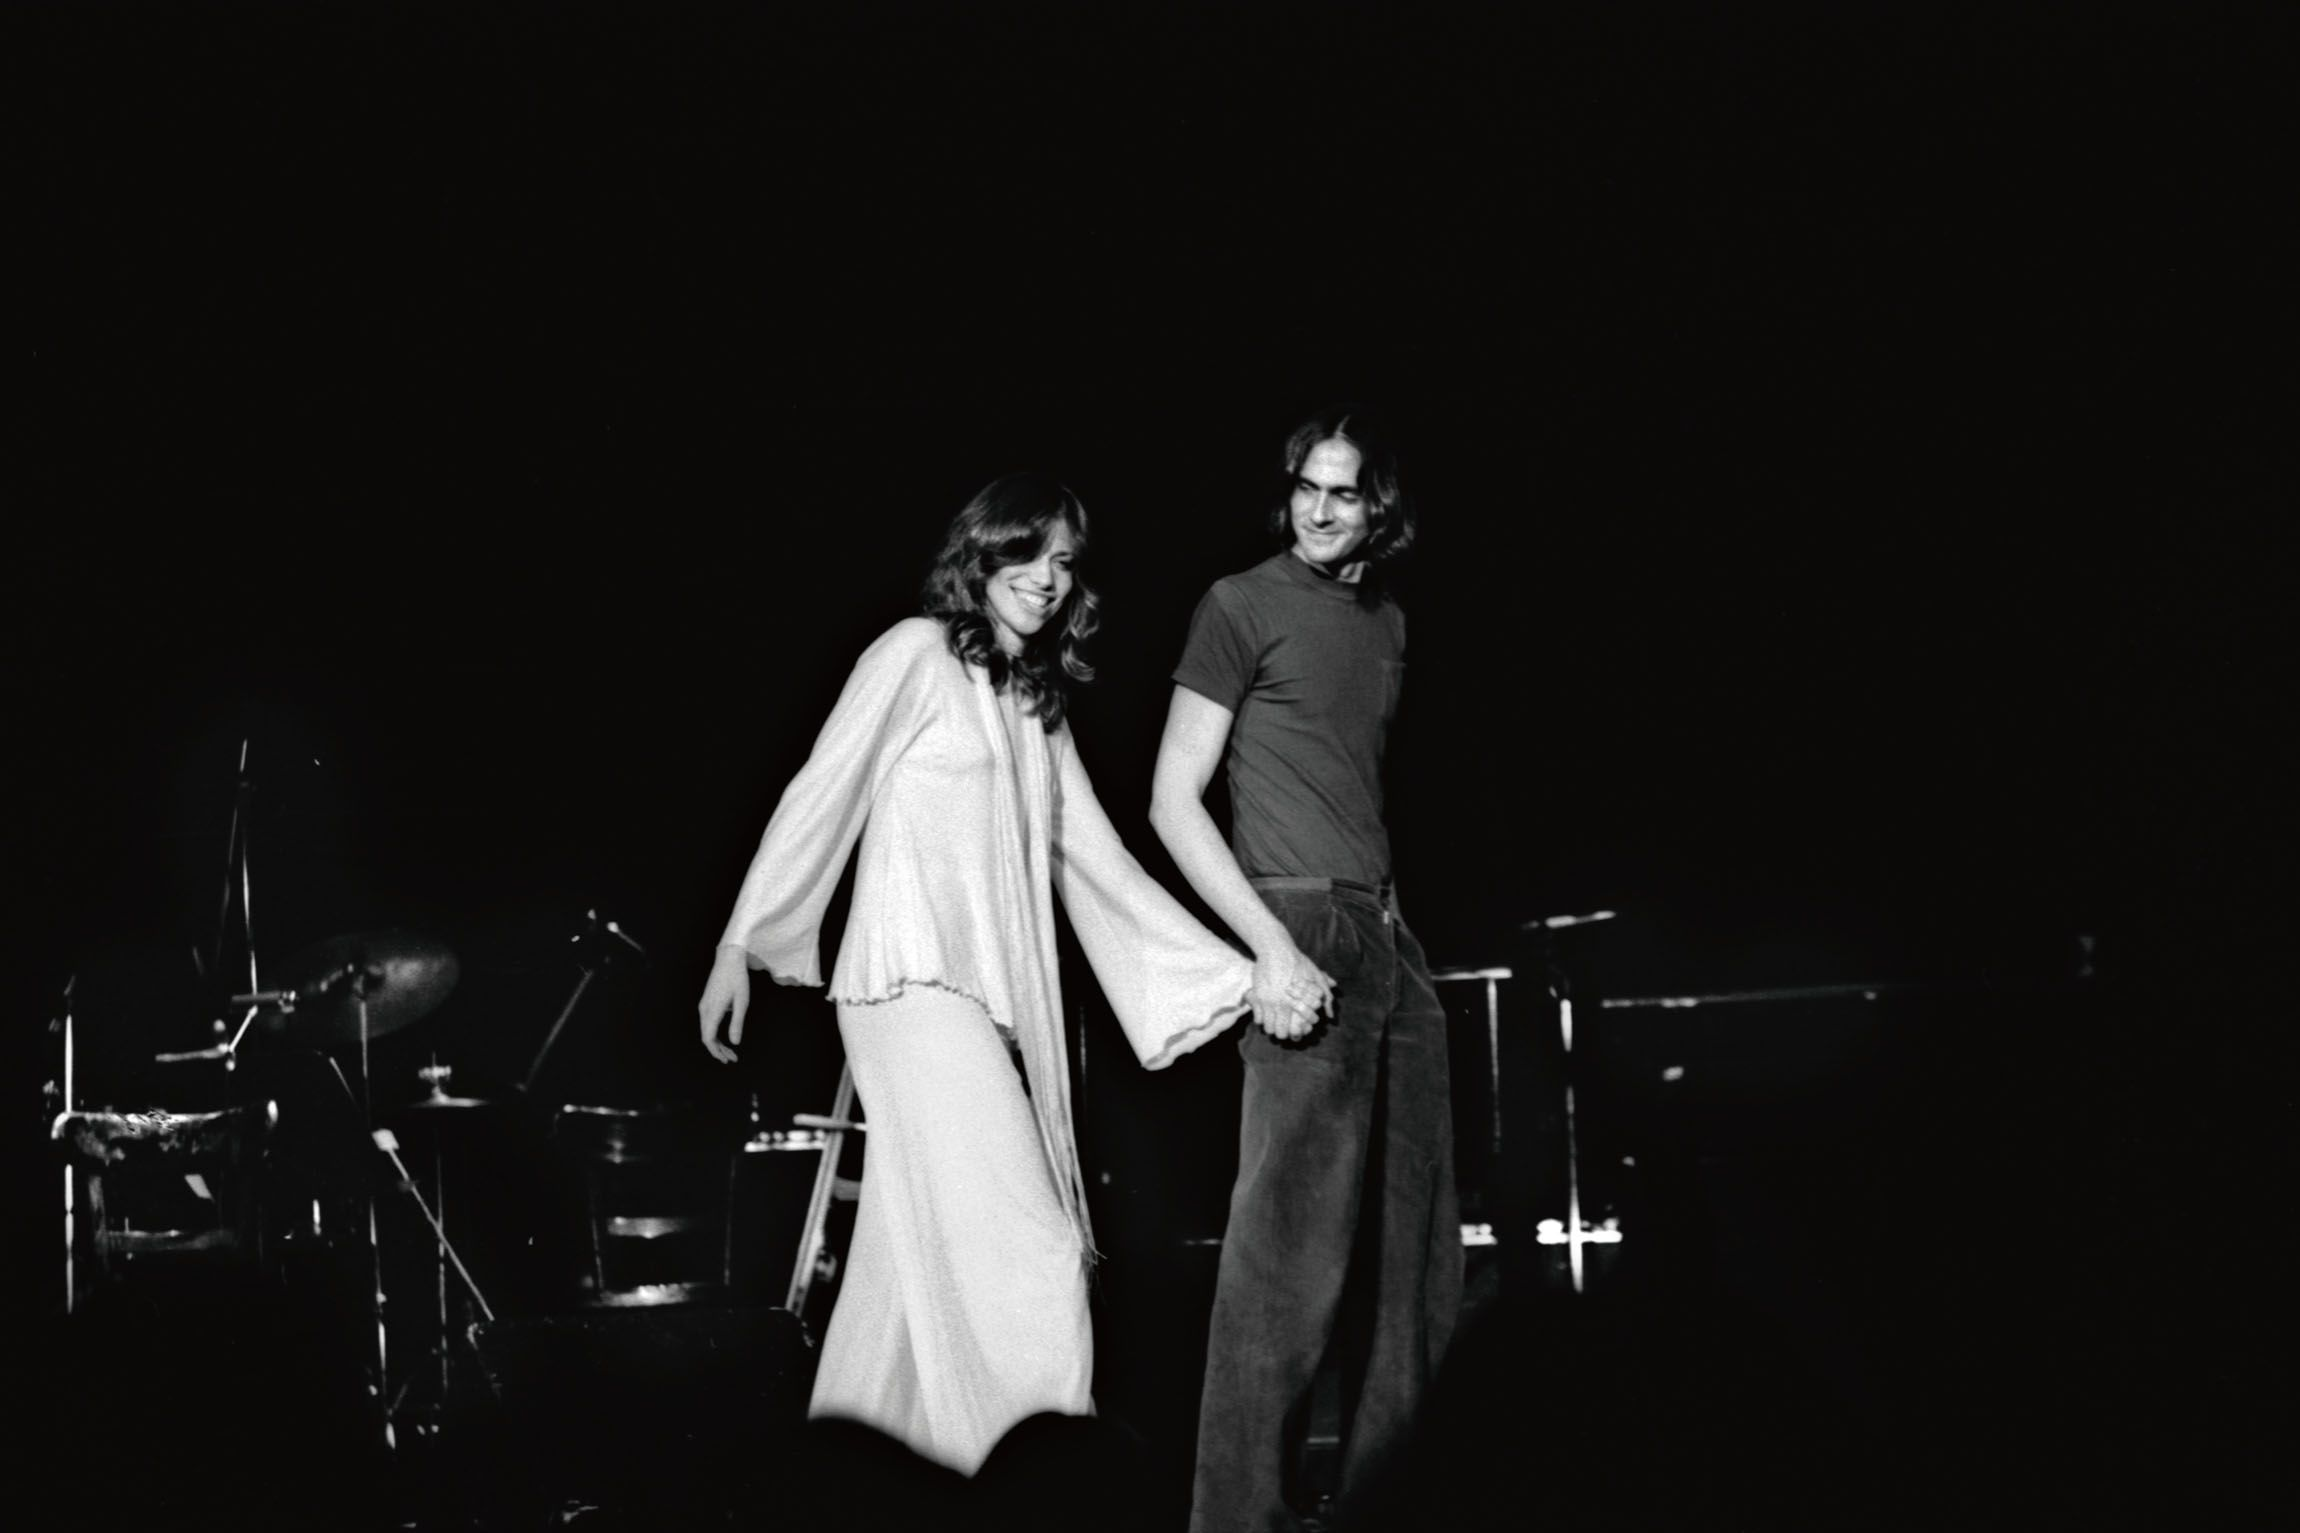 Carly Simon joins then-husband James Taylor onstage at Carnegie Hall in New York in 1974.